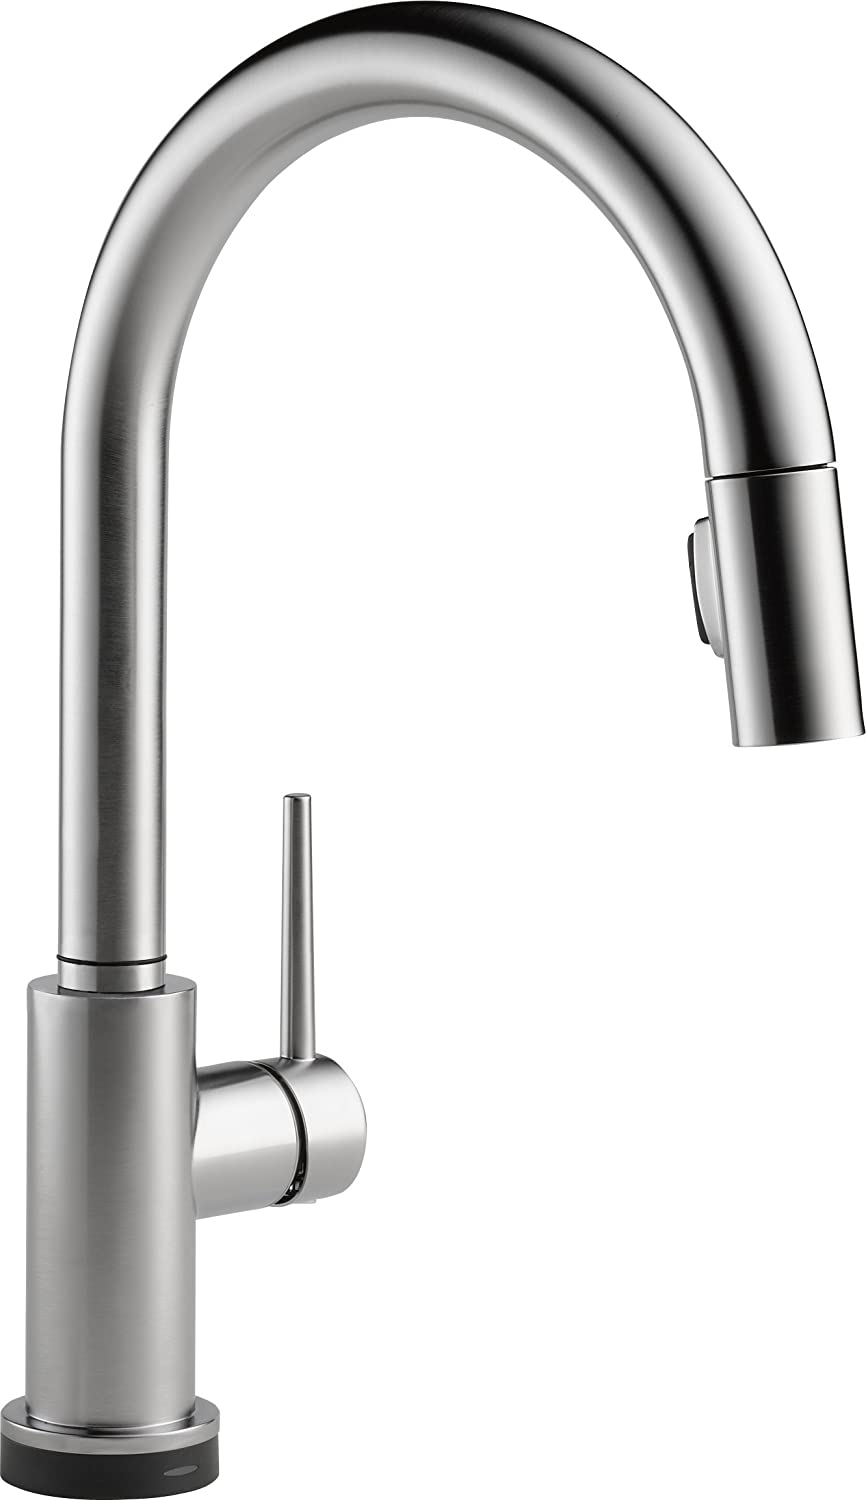 Delta Faucet Trinsic Single Handle Touch Kitchen Sink Faucet With Pull Down Sprayer Touch2o Technology And Magnetic Docking Spray Head Arctic